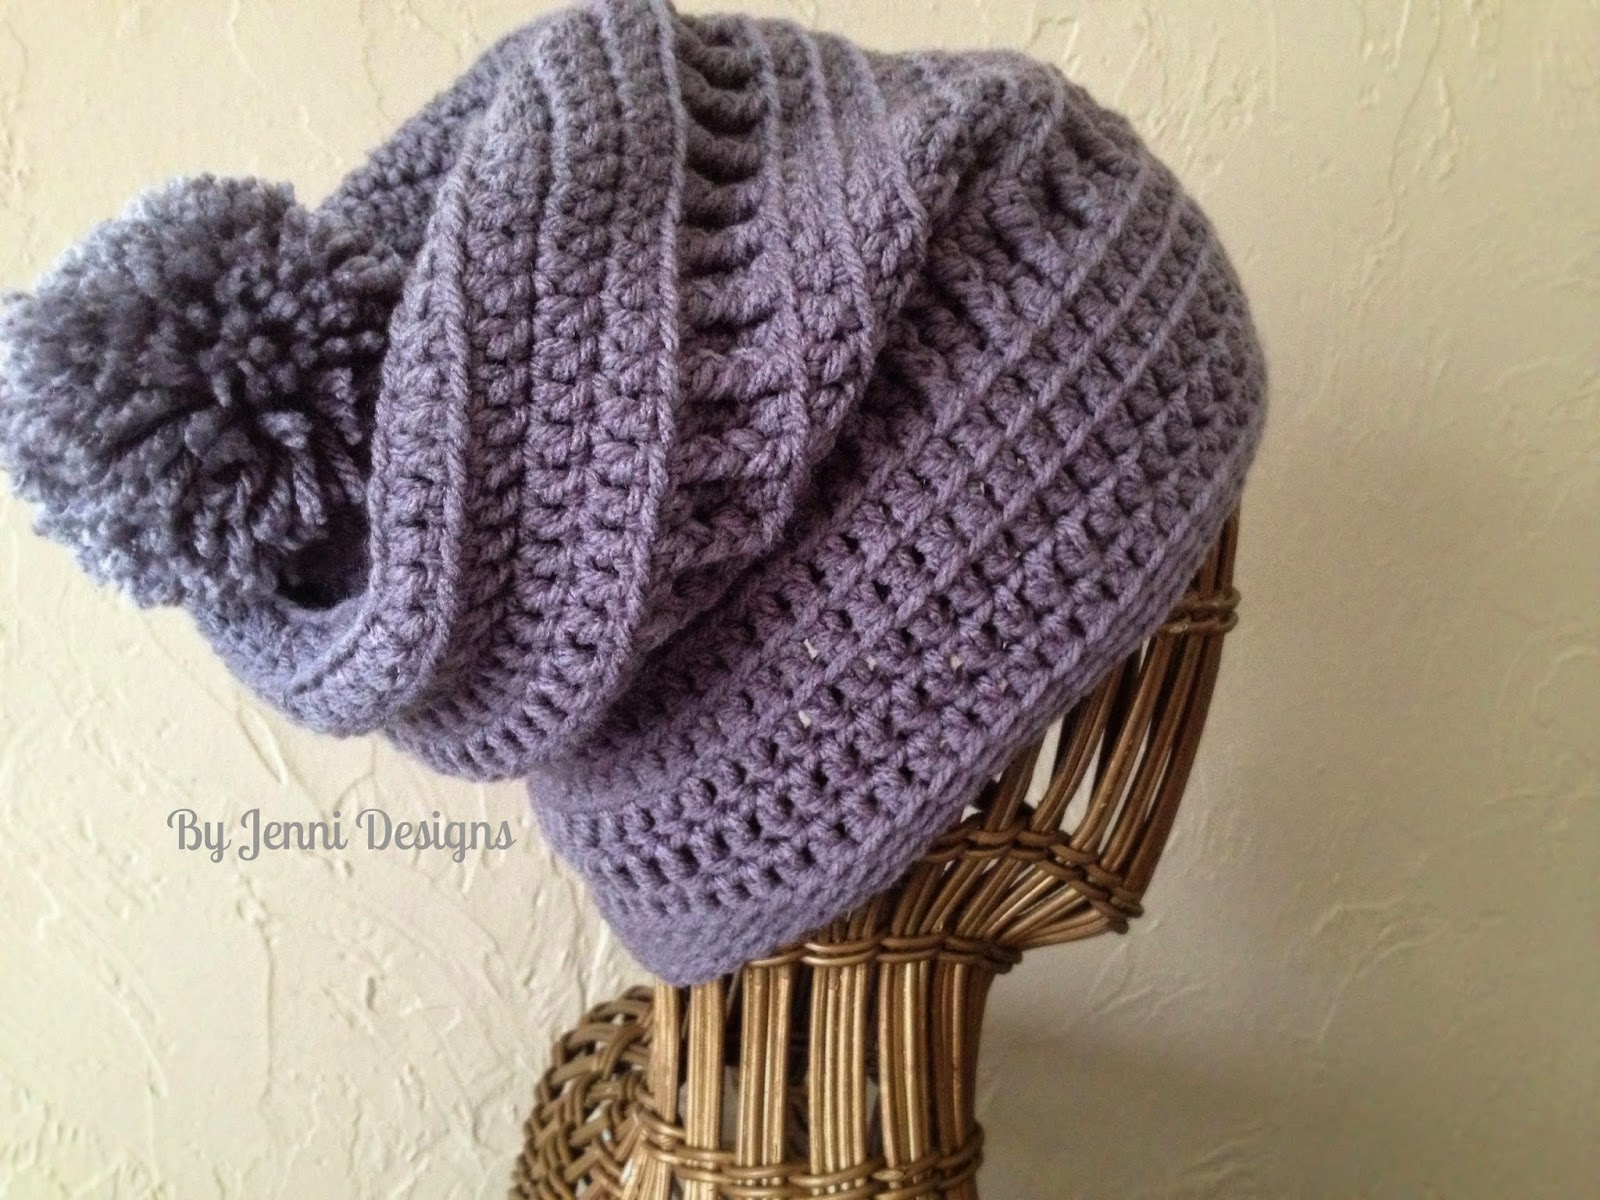 Free Patterns Crochet Beanies : By Jenni Designs: Free Crochet Pattern: Womens Slouchy ...